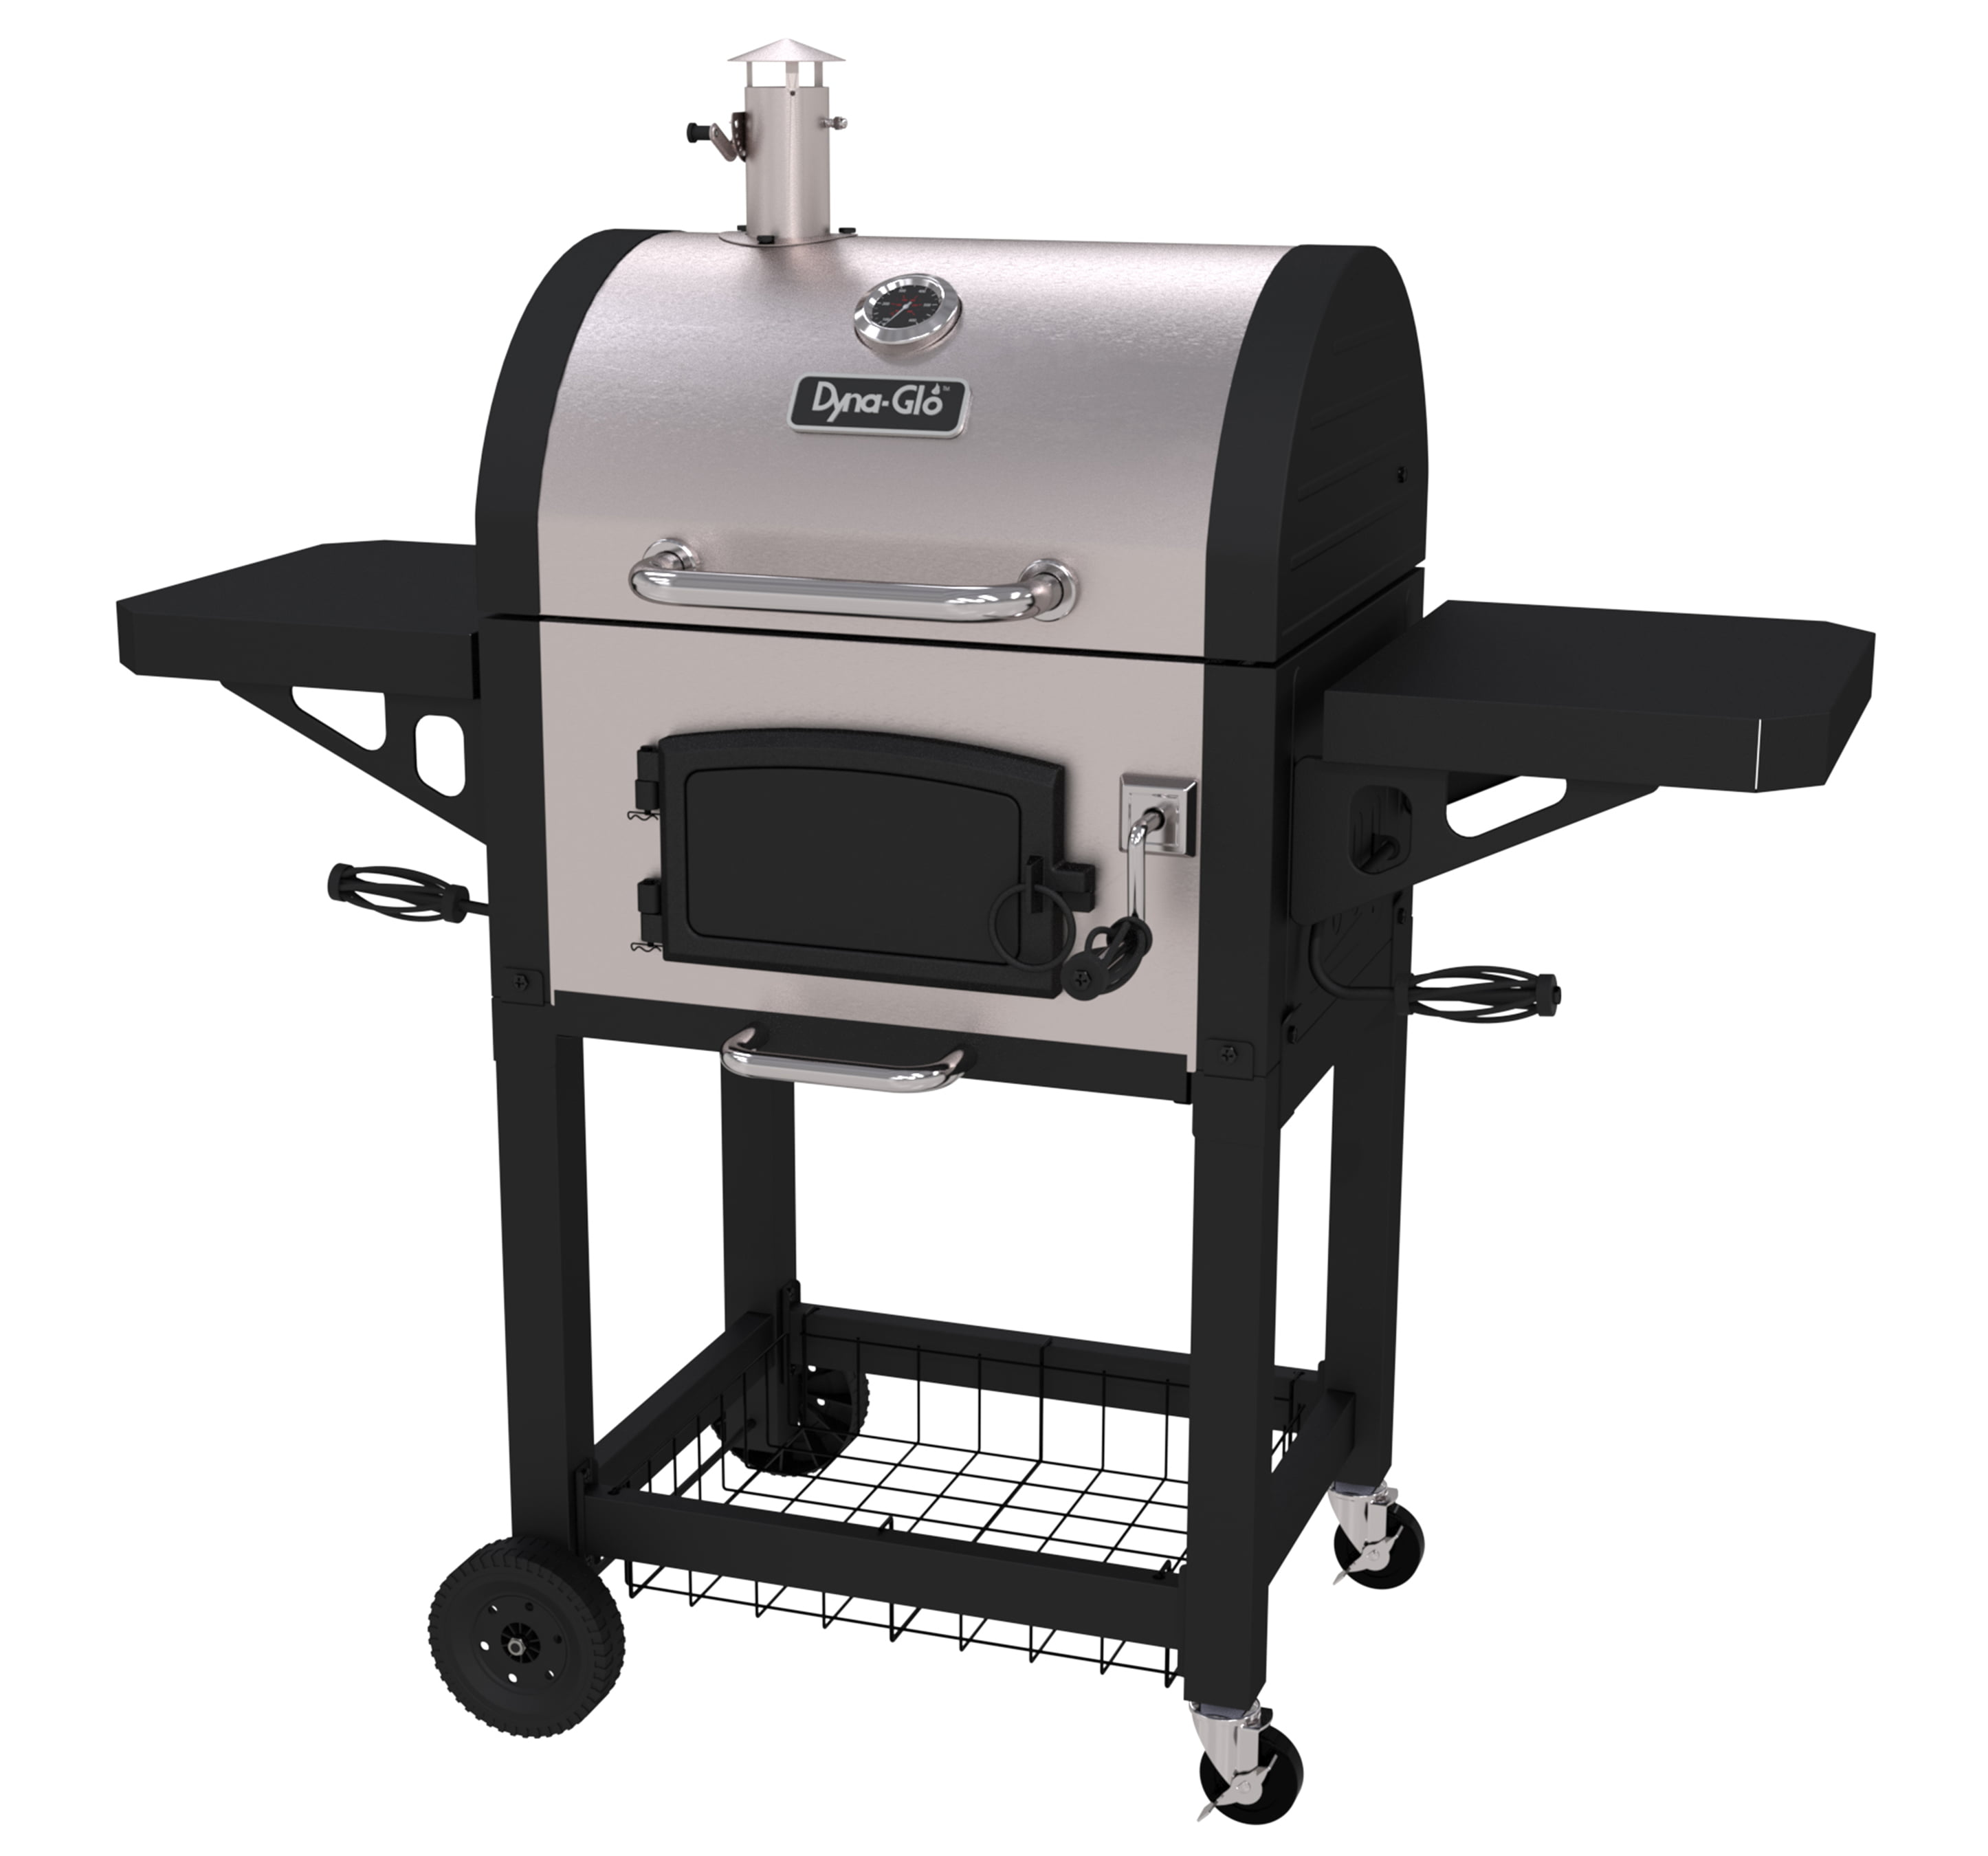 Dyna-Glo Heavy-Duty Compact Charcoal Grill by GHP Group, Inc.